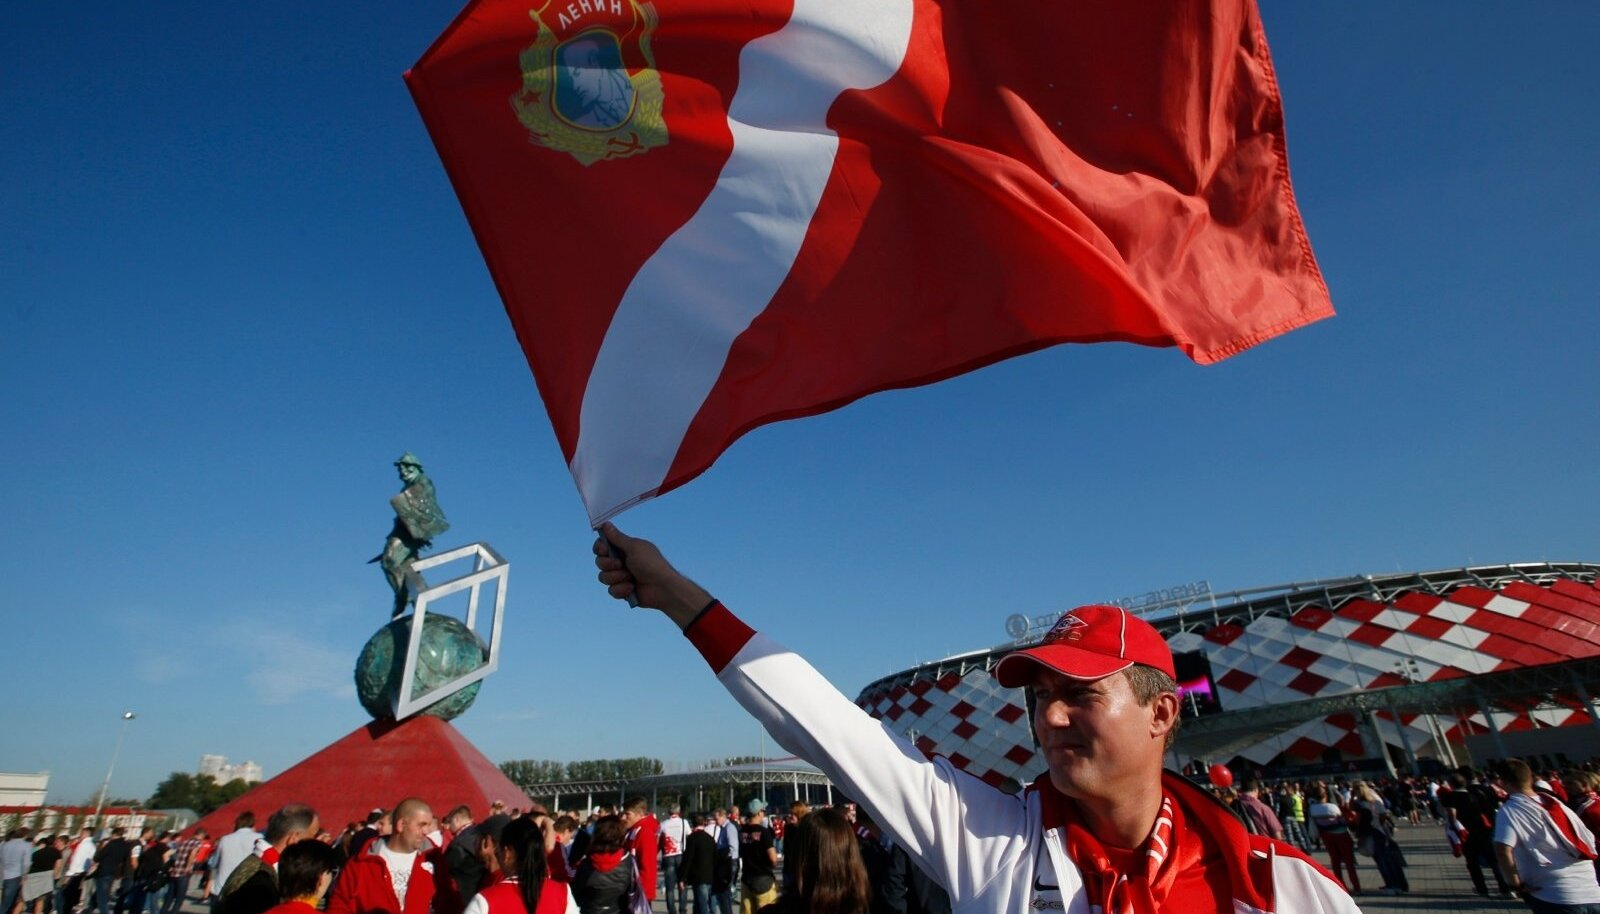 A Spartak fan waves a flag outside Otkrytie Arena stadium, before the team's warm-up soccer match against Belgrade's Red Star in Moscow